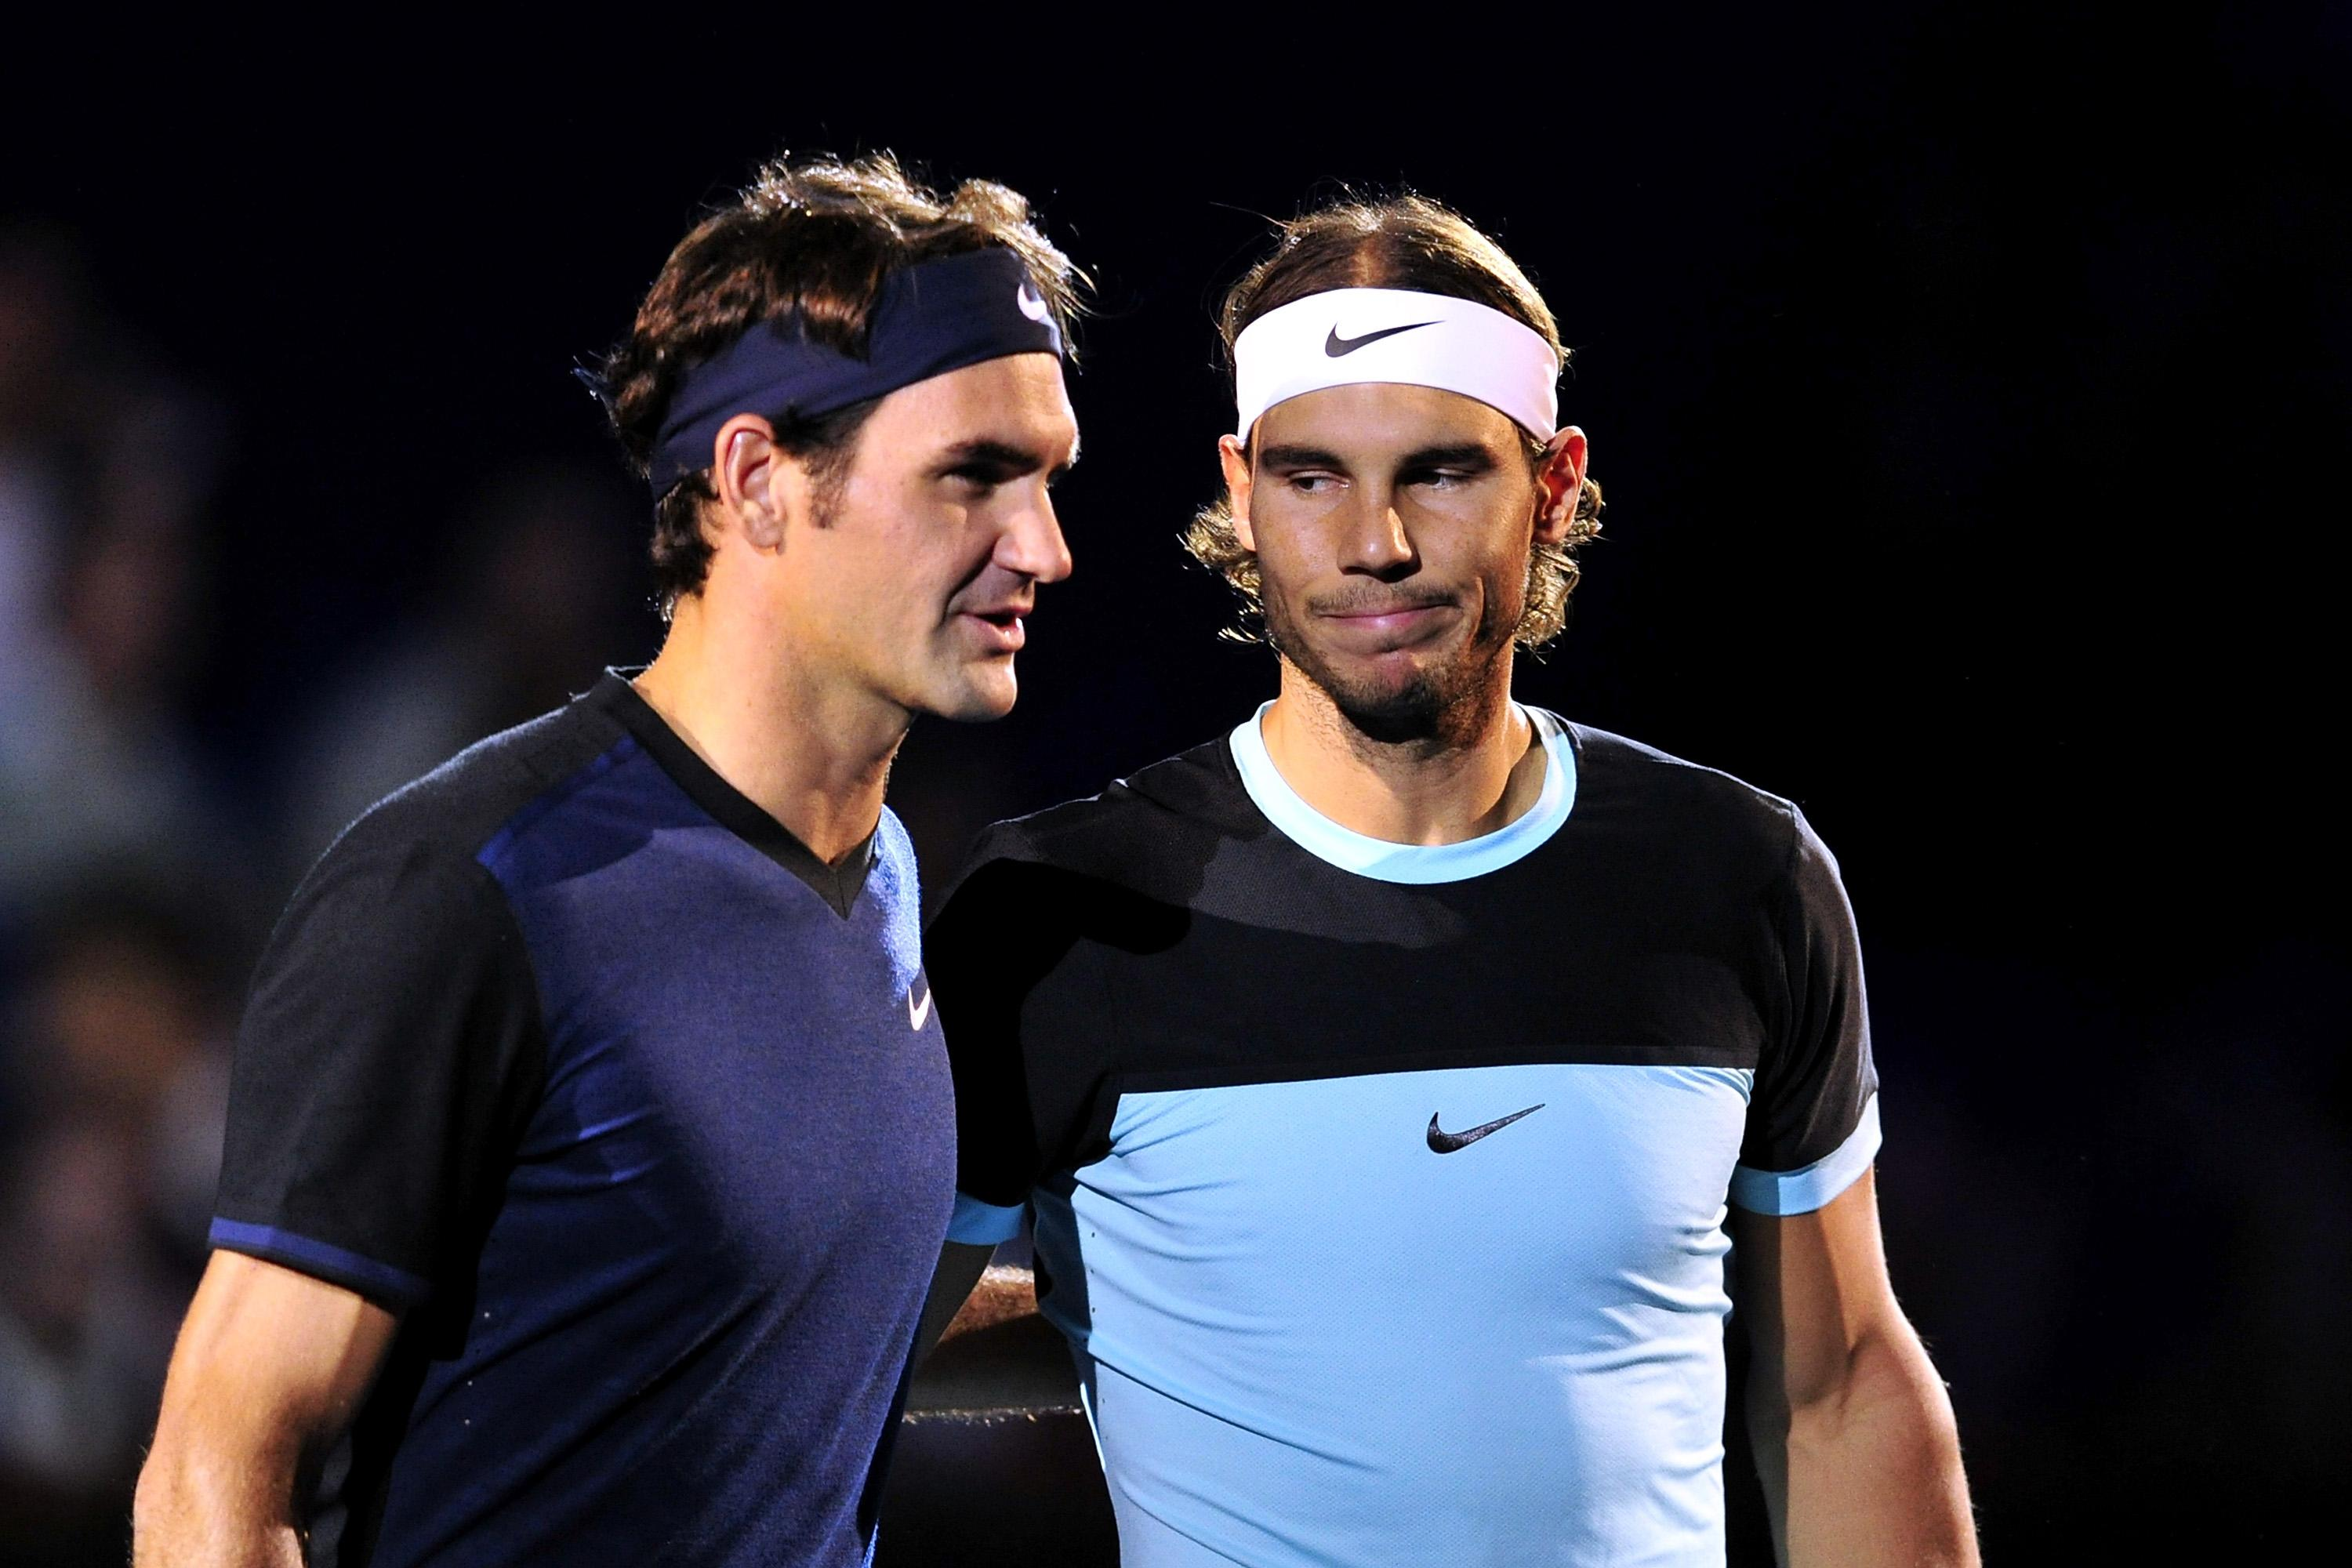 Nadal sets up dream final with Federer